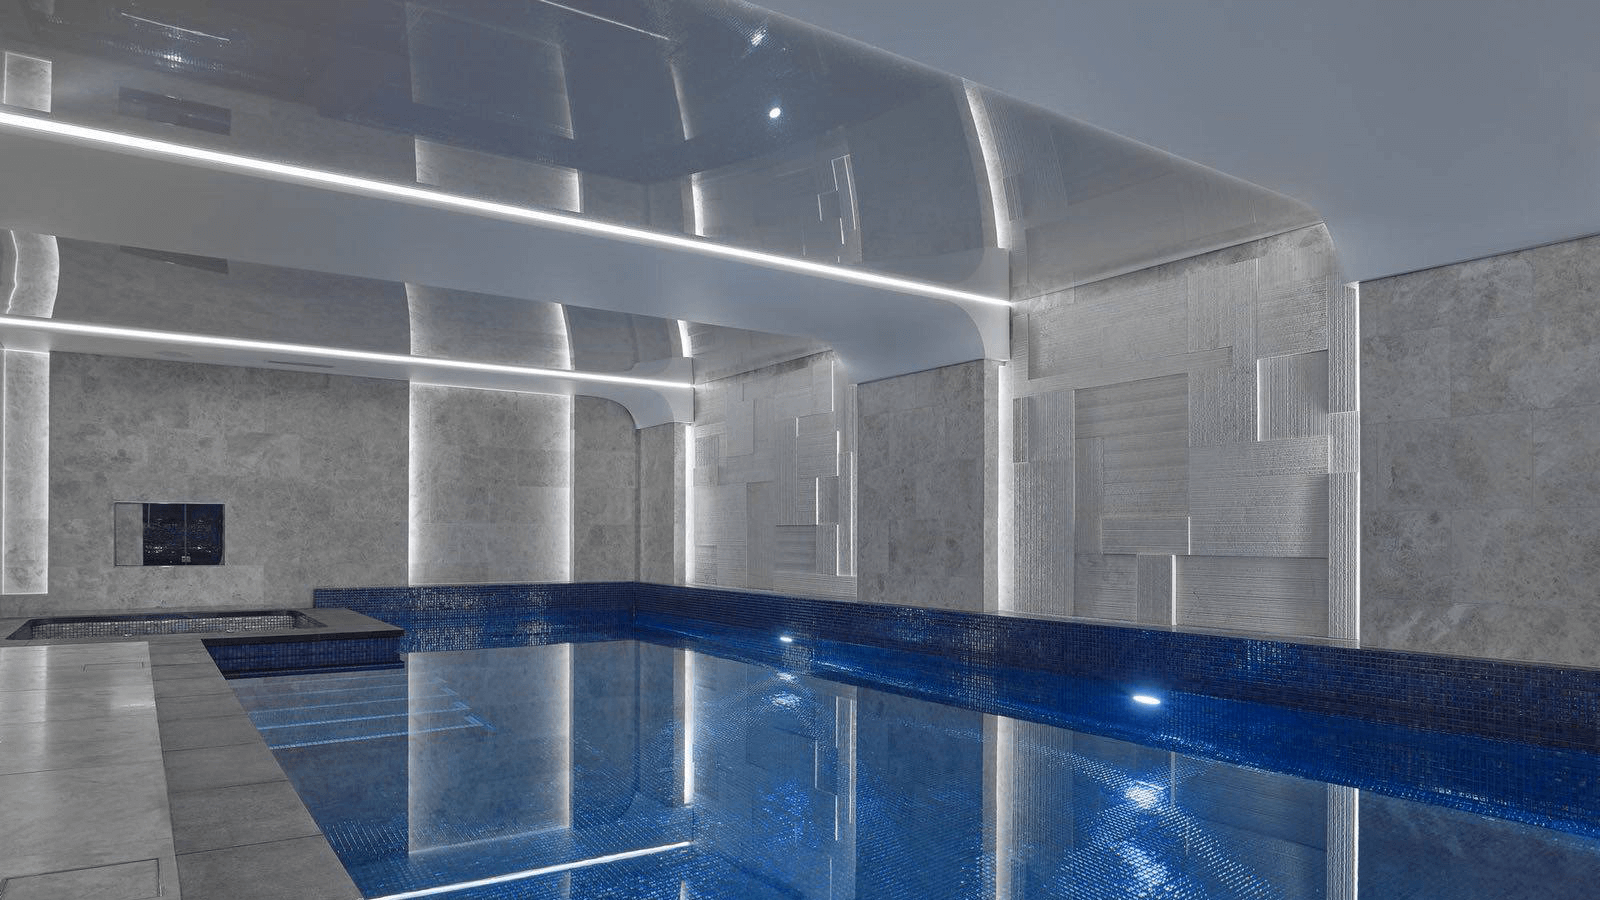 swimmingpool-linear-lighning-ceiling2.png